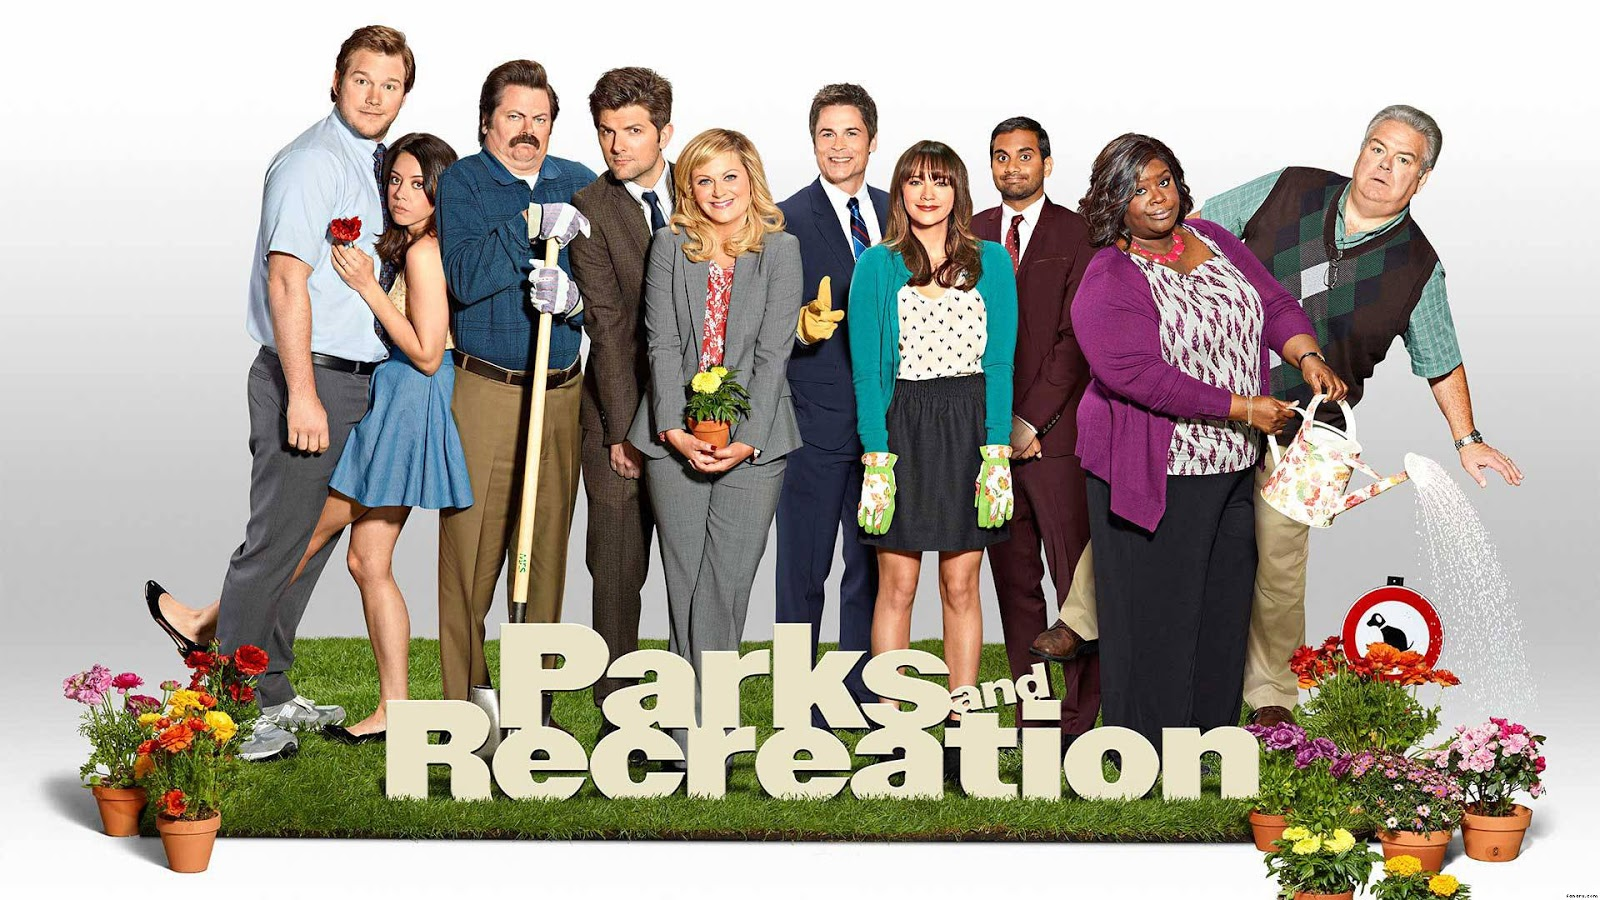 El reparto completo de Parks and Recreation